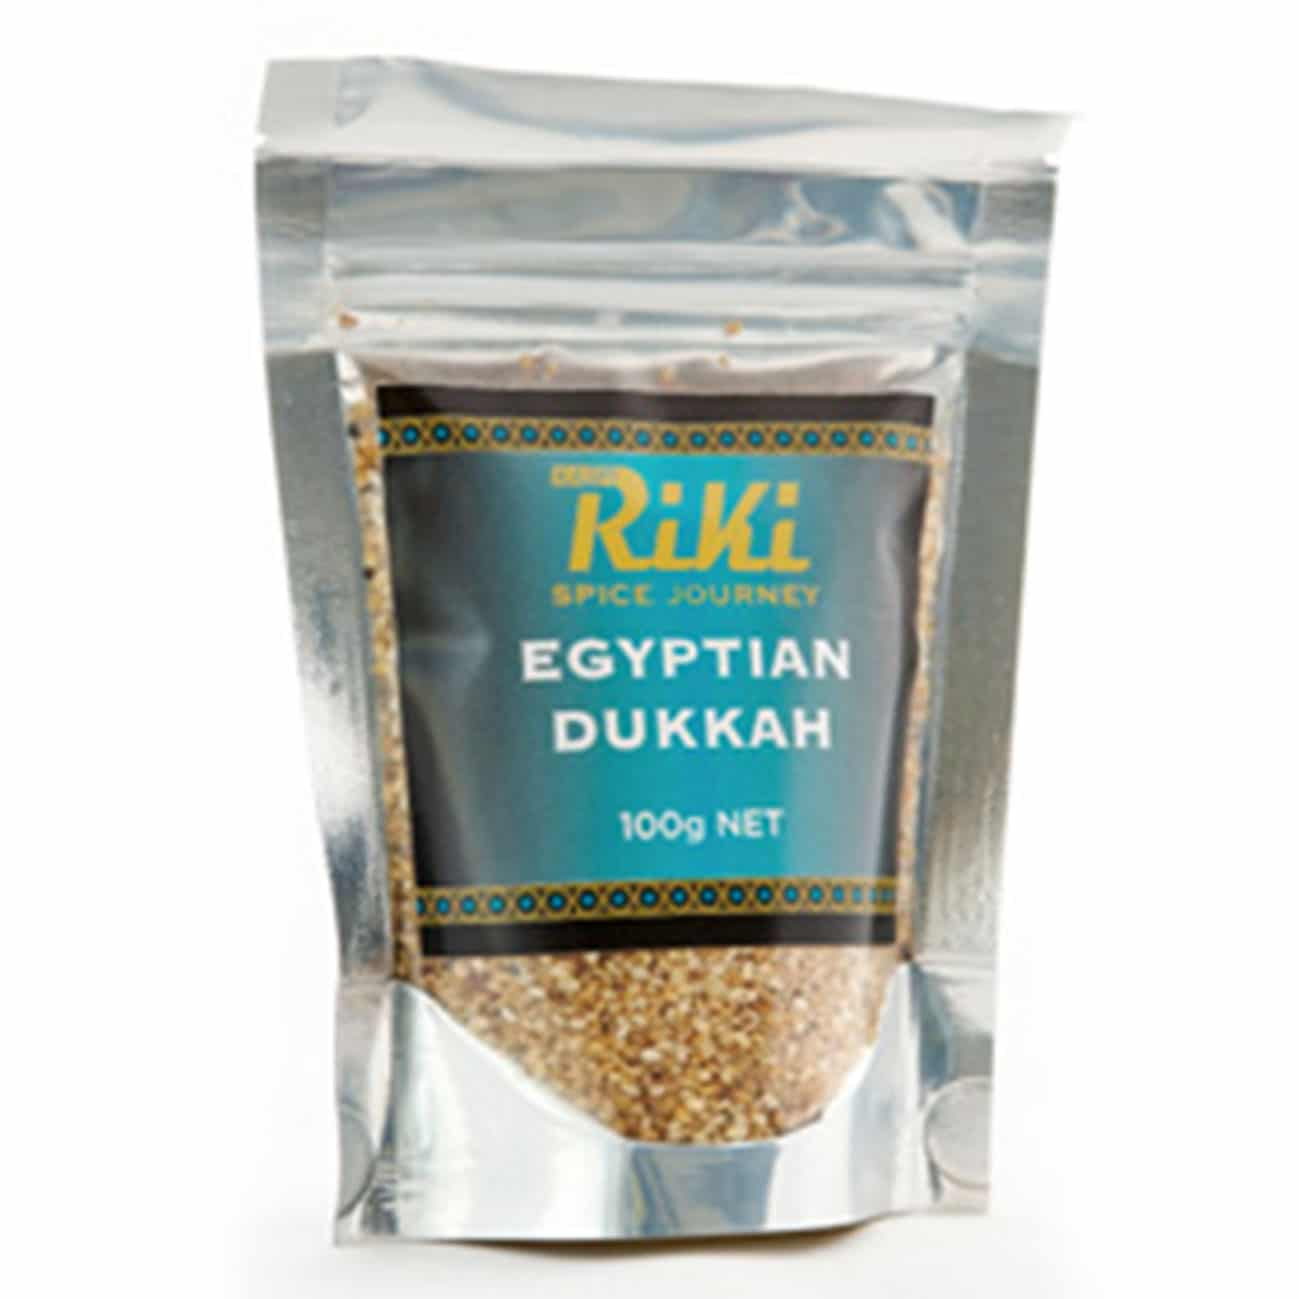 Egyptian Dukkha